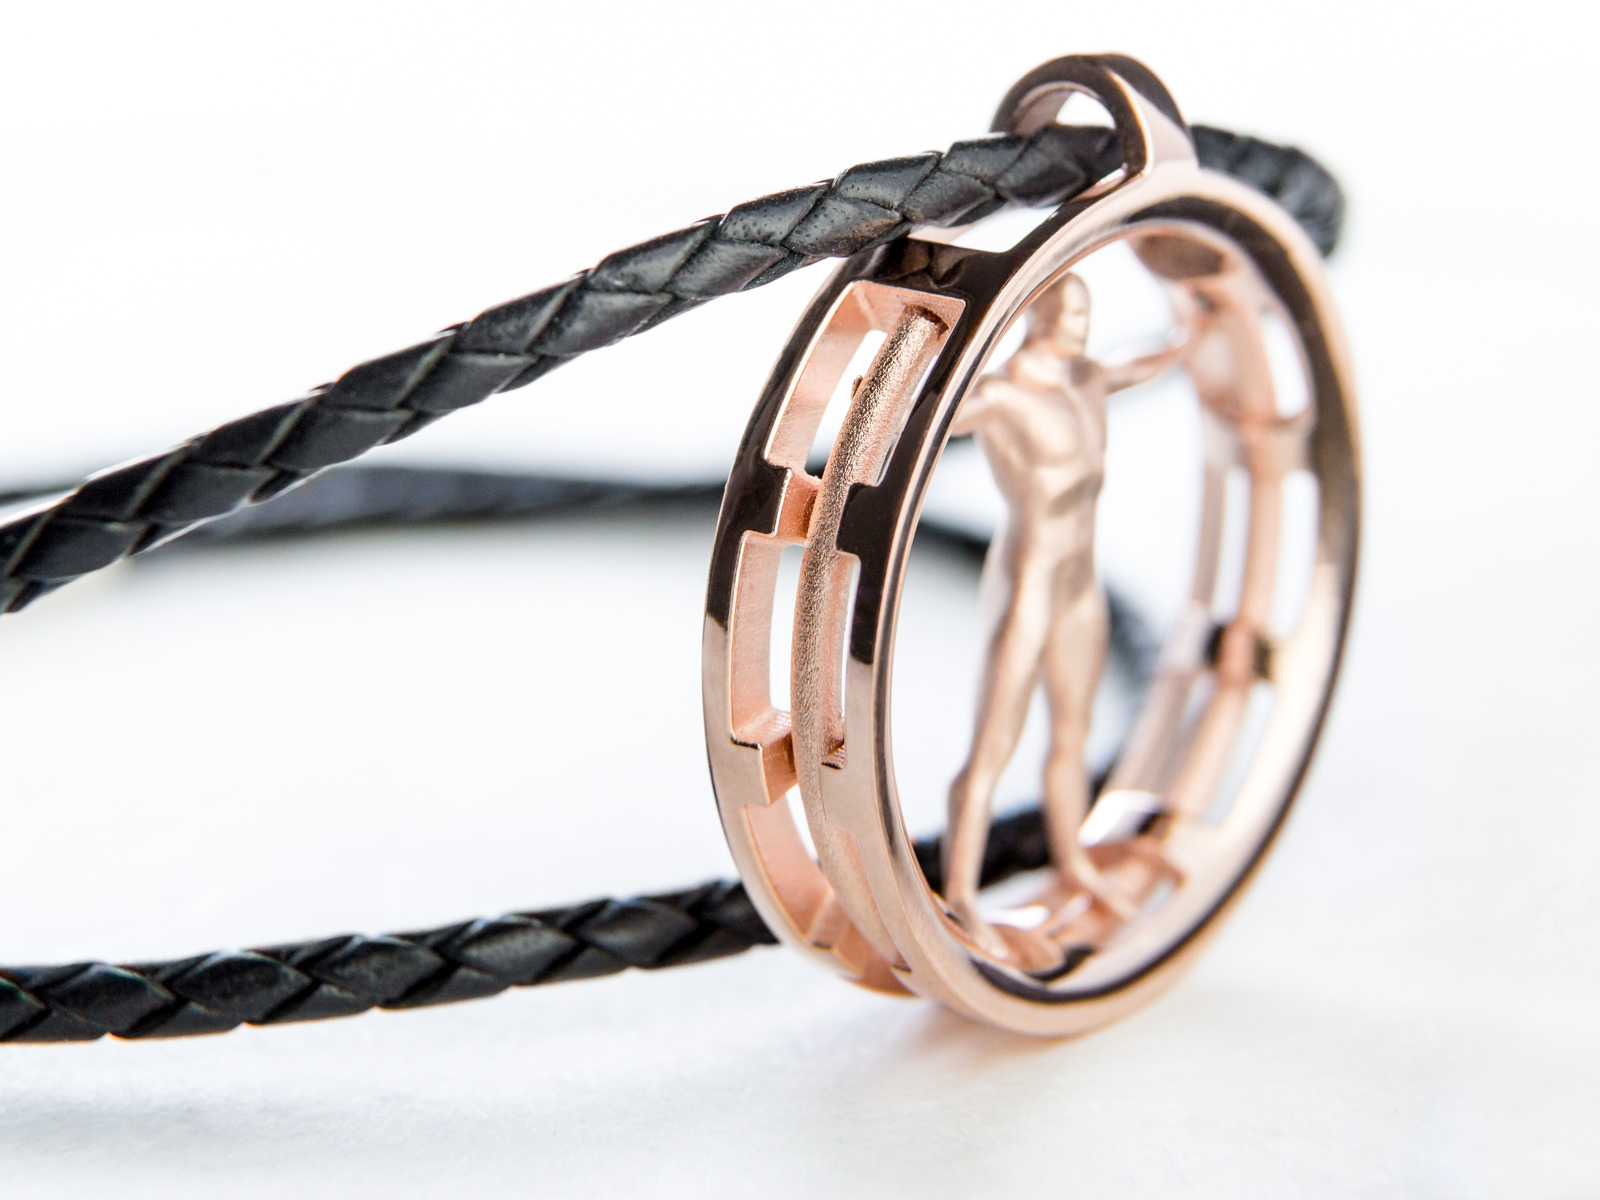 A rose gold Vitruvian man pendant with leather cord attached